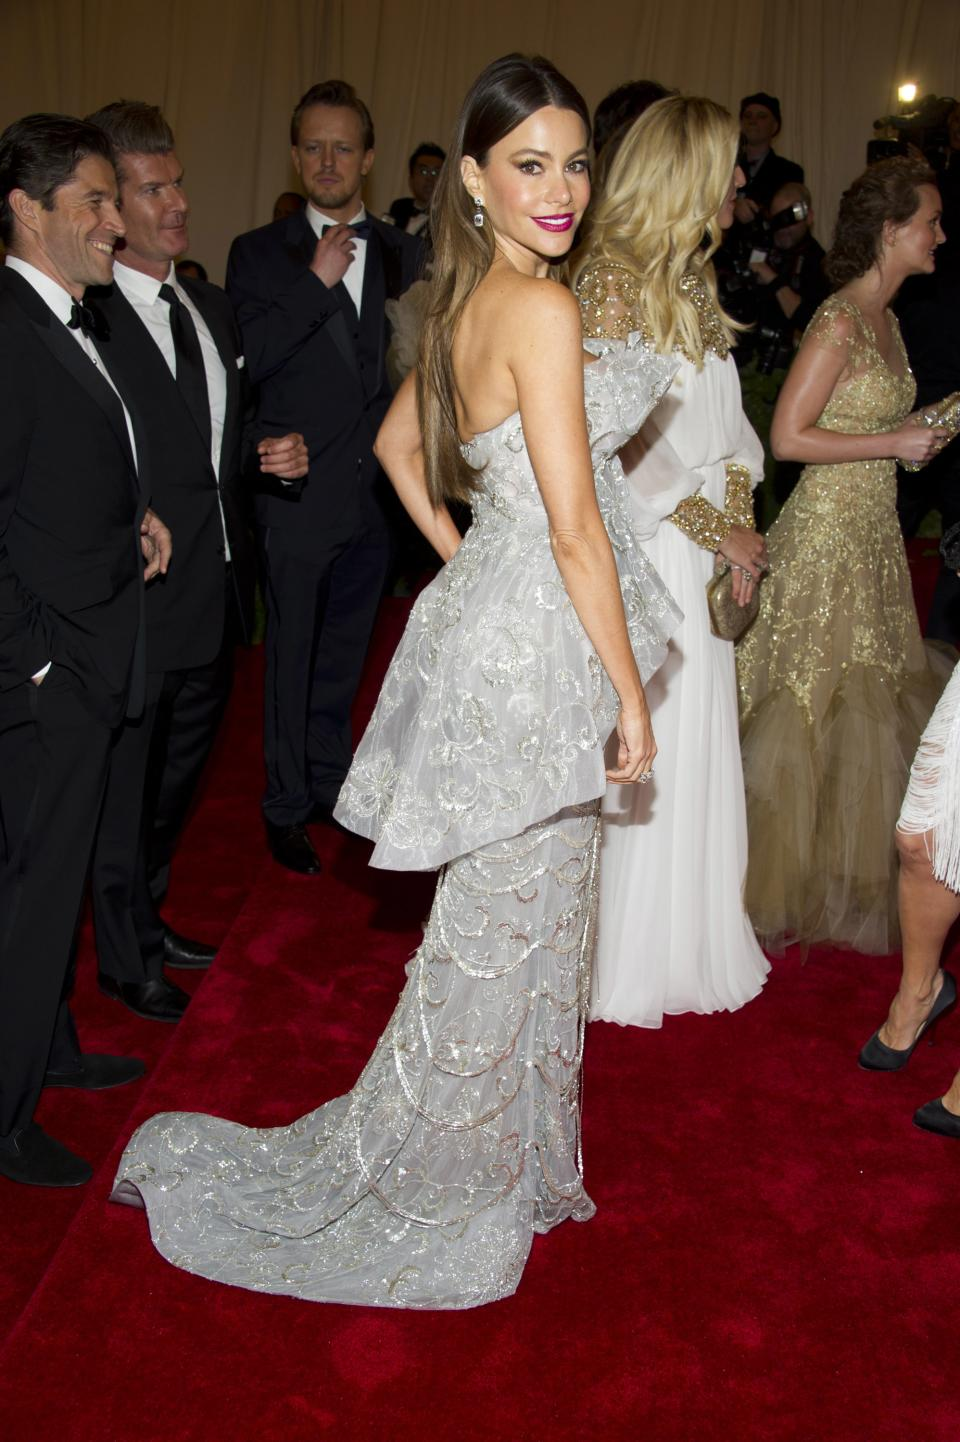 Sofia Vergara arrives at the Metropolitan Museum of Art Costume Institute gala benefit, celebrating Elsa Schiaparelli and Miuccia Prada, Monday, May 7, 2012 in New York. (AP Photo/Charles Sykes)